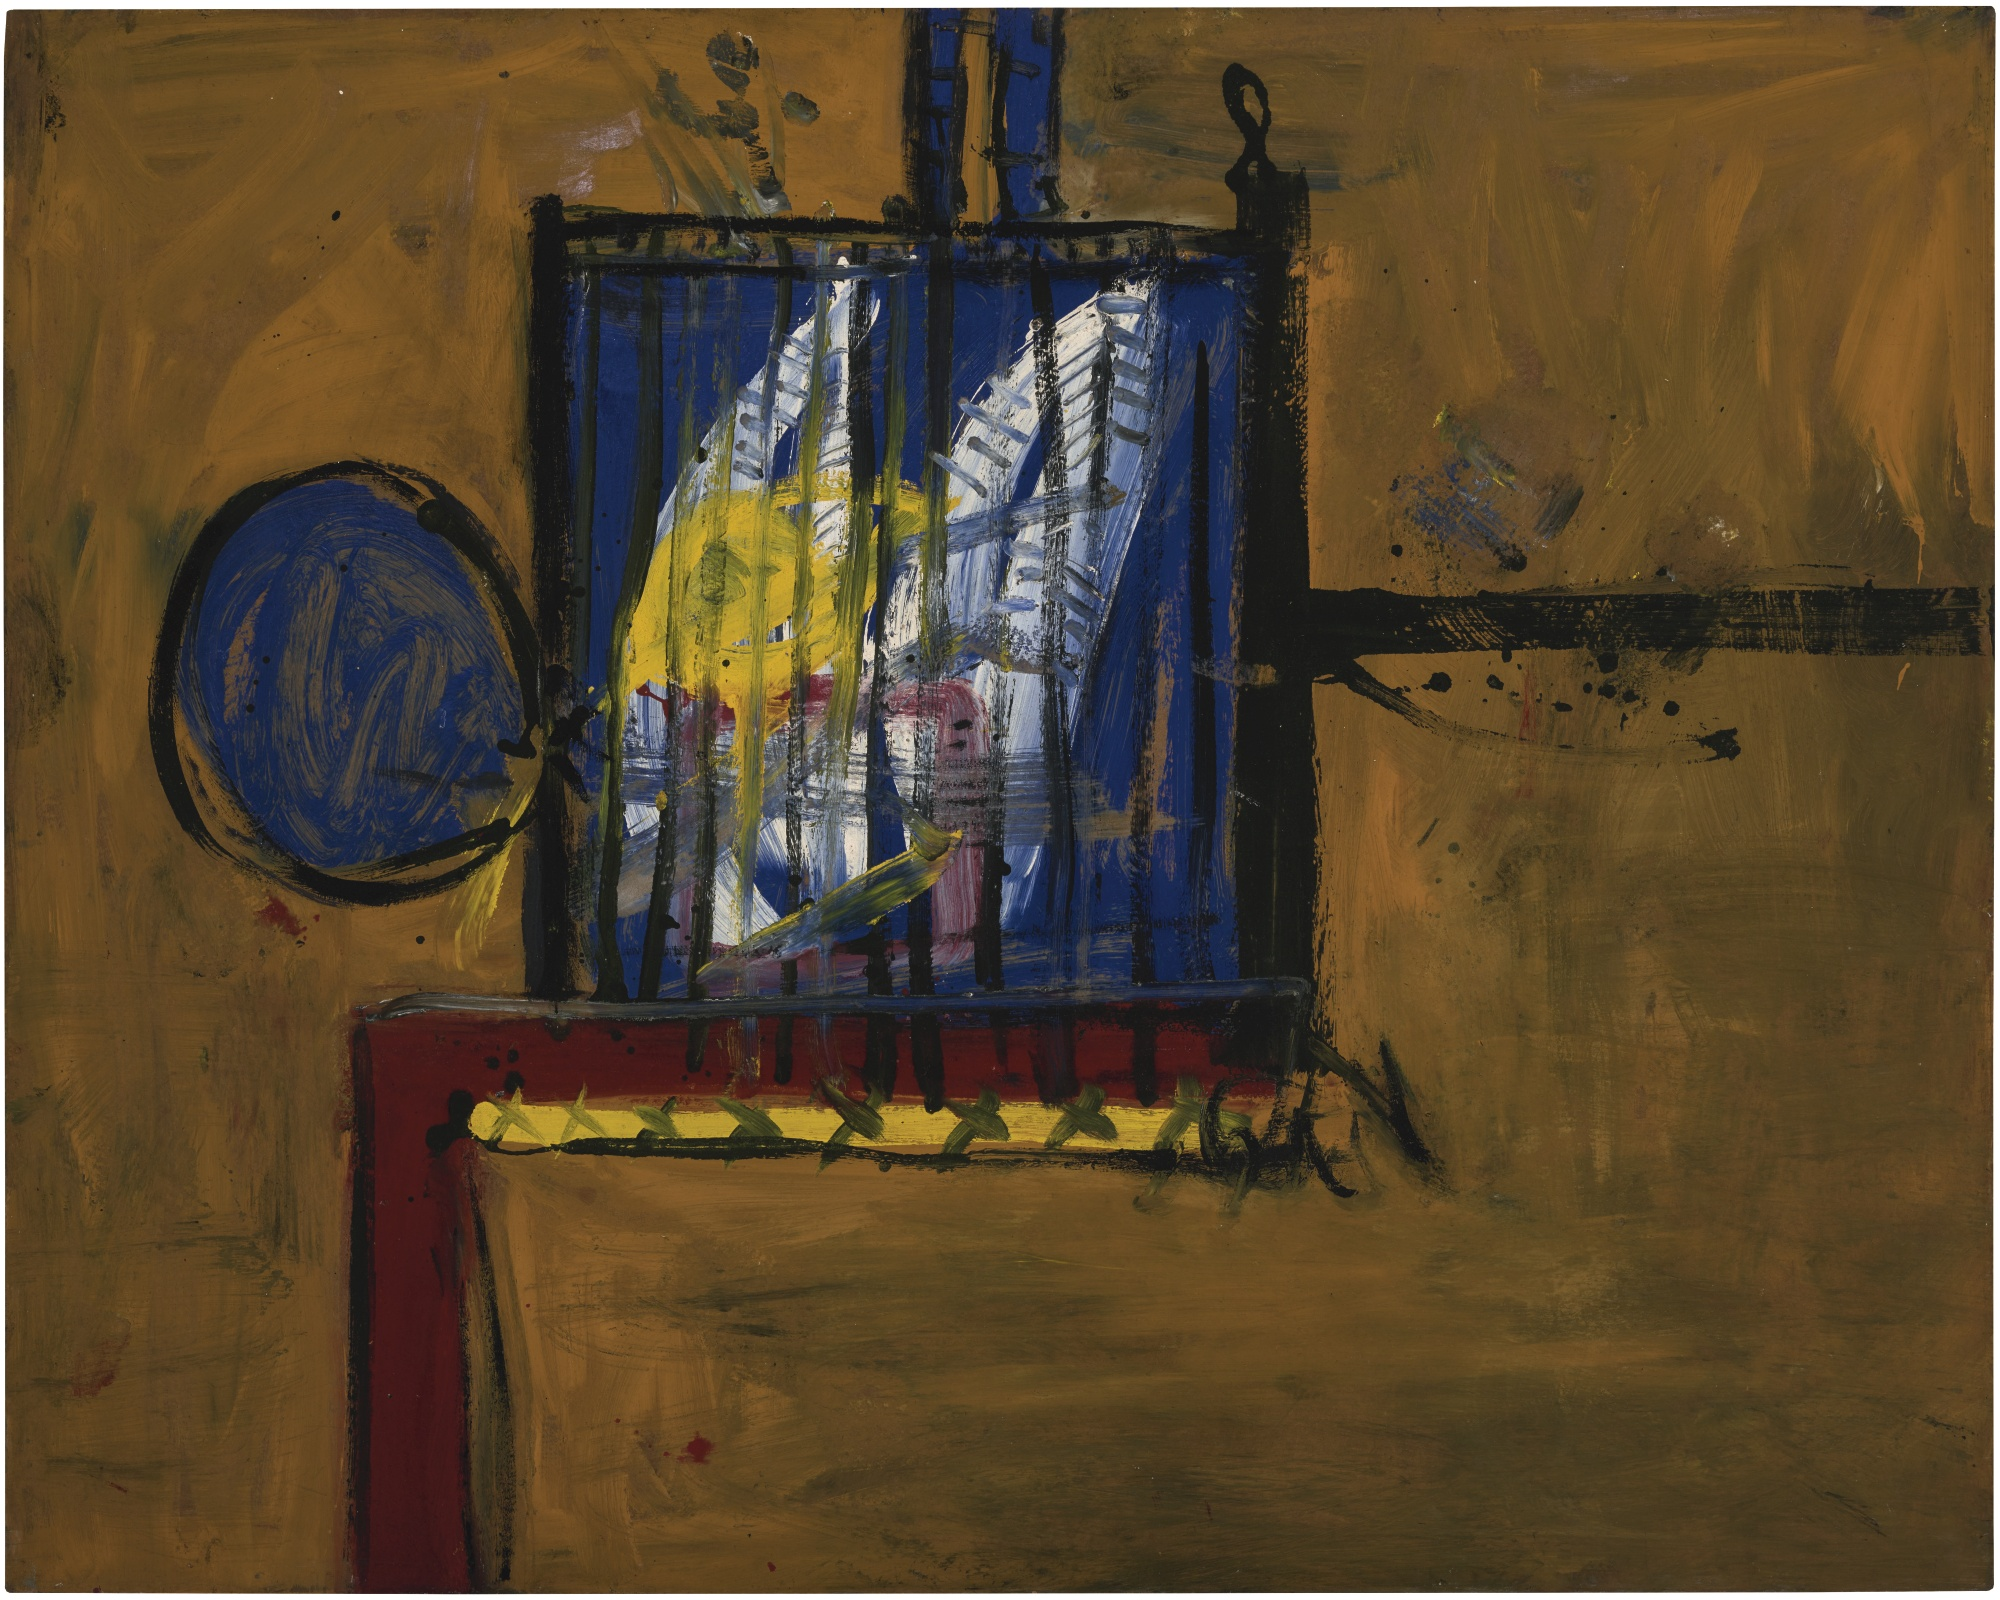 Alan Davie-Bird Cage No. 1-1956